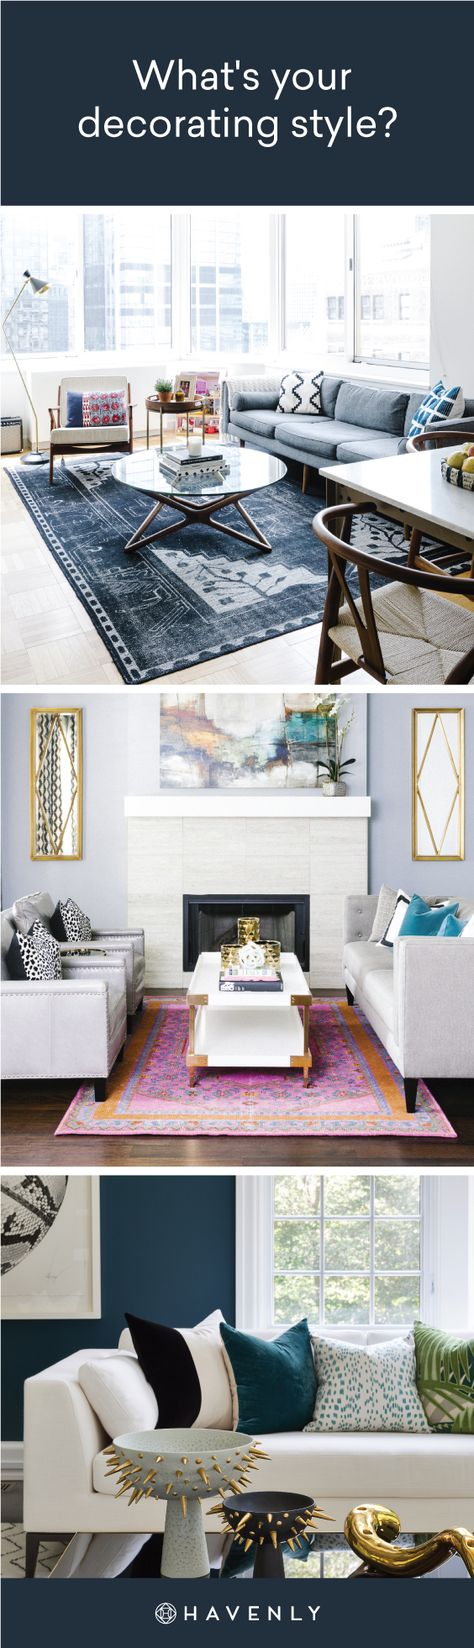 Interior Design Style Quiz - What's Your Decorating Style